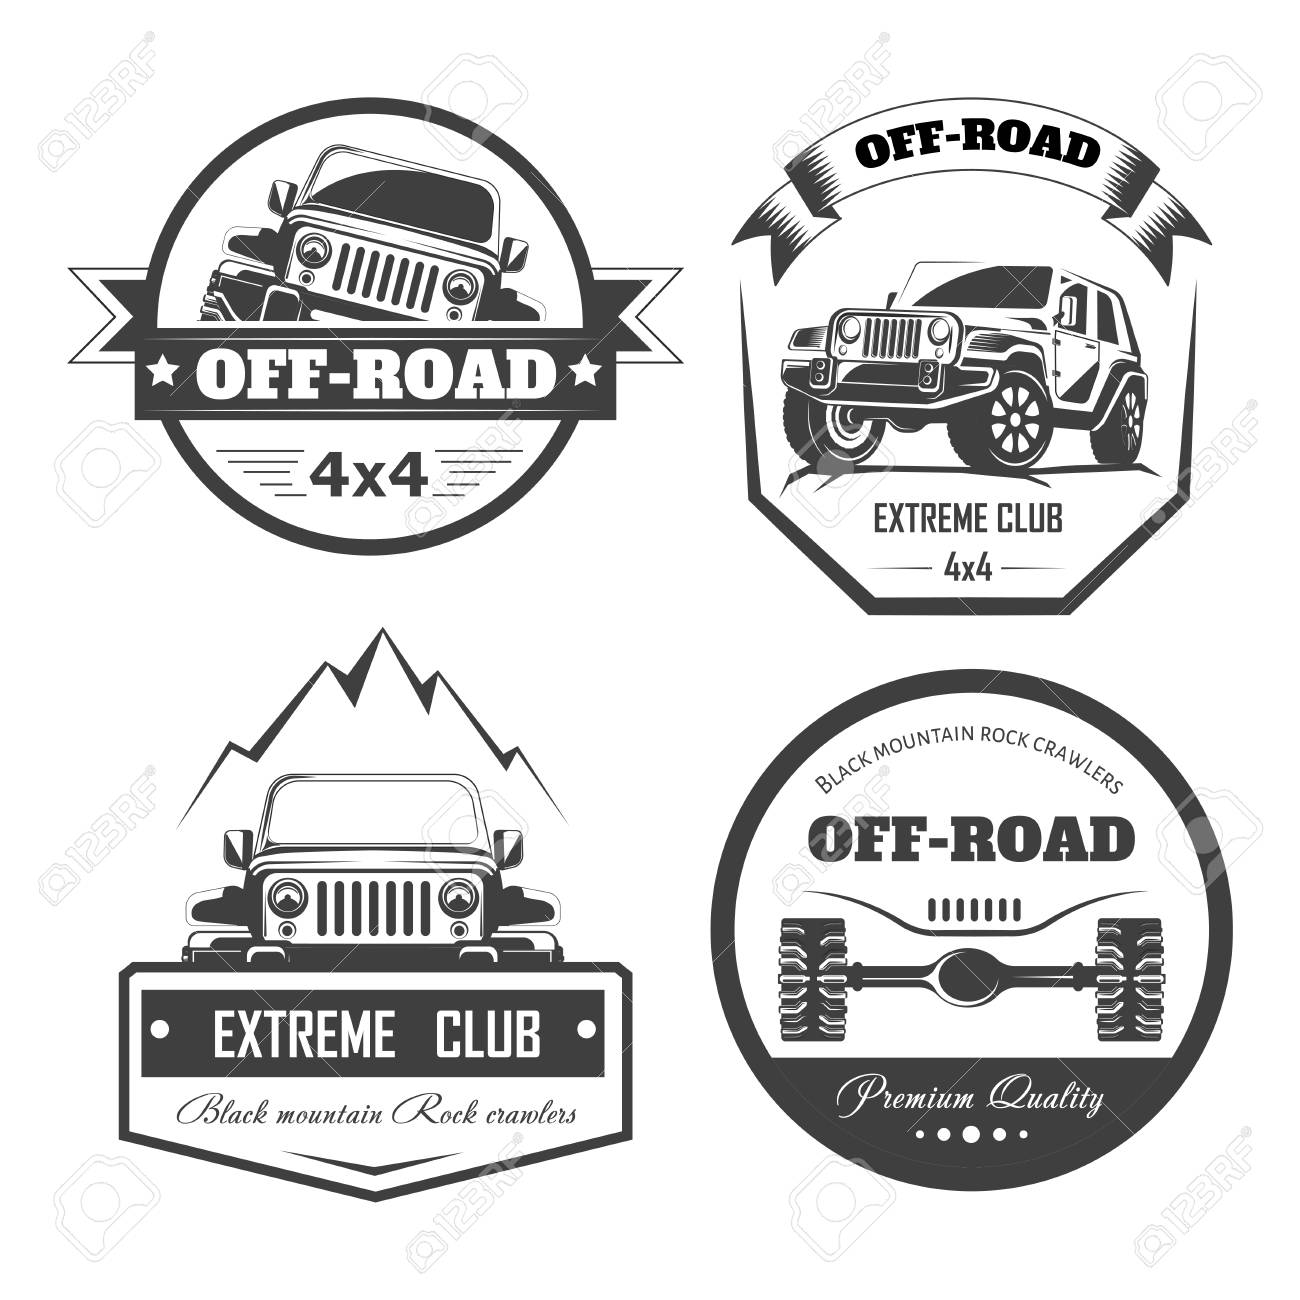 Offroad X Extreme Car Club Logo Templates Vector Symbols - 4x4 label template